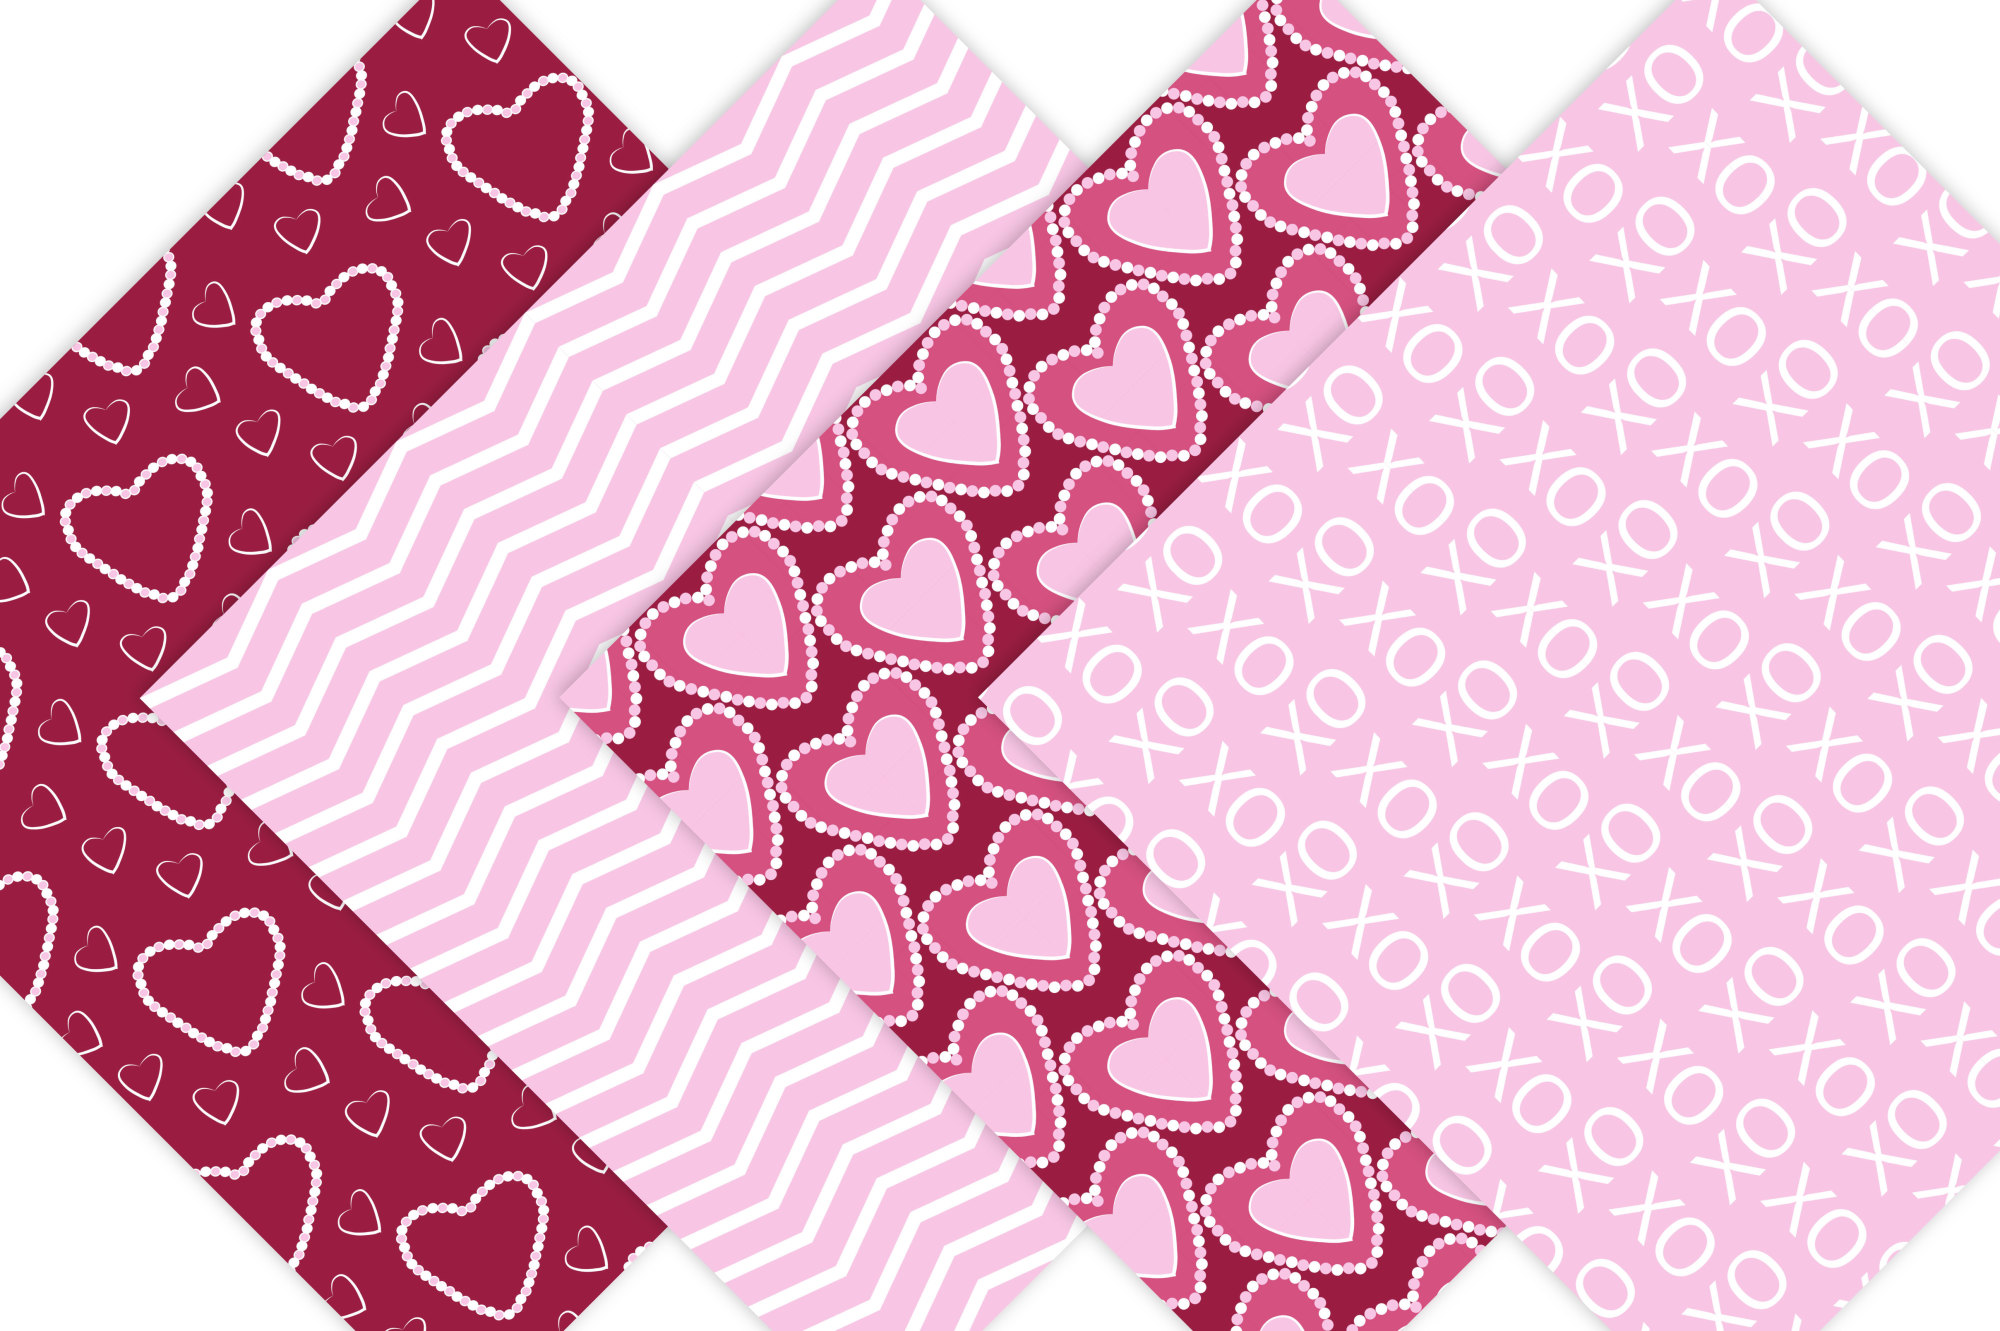 Hearts Digital Paper - Pink and Red Valentine Background Patterns example image 5